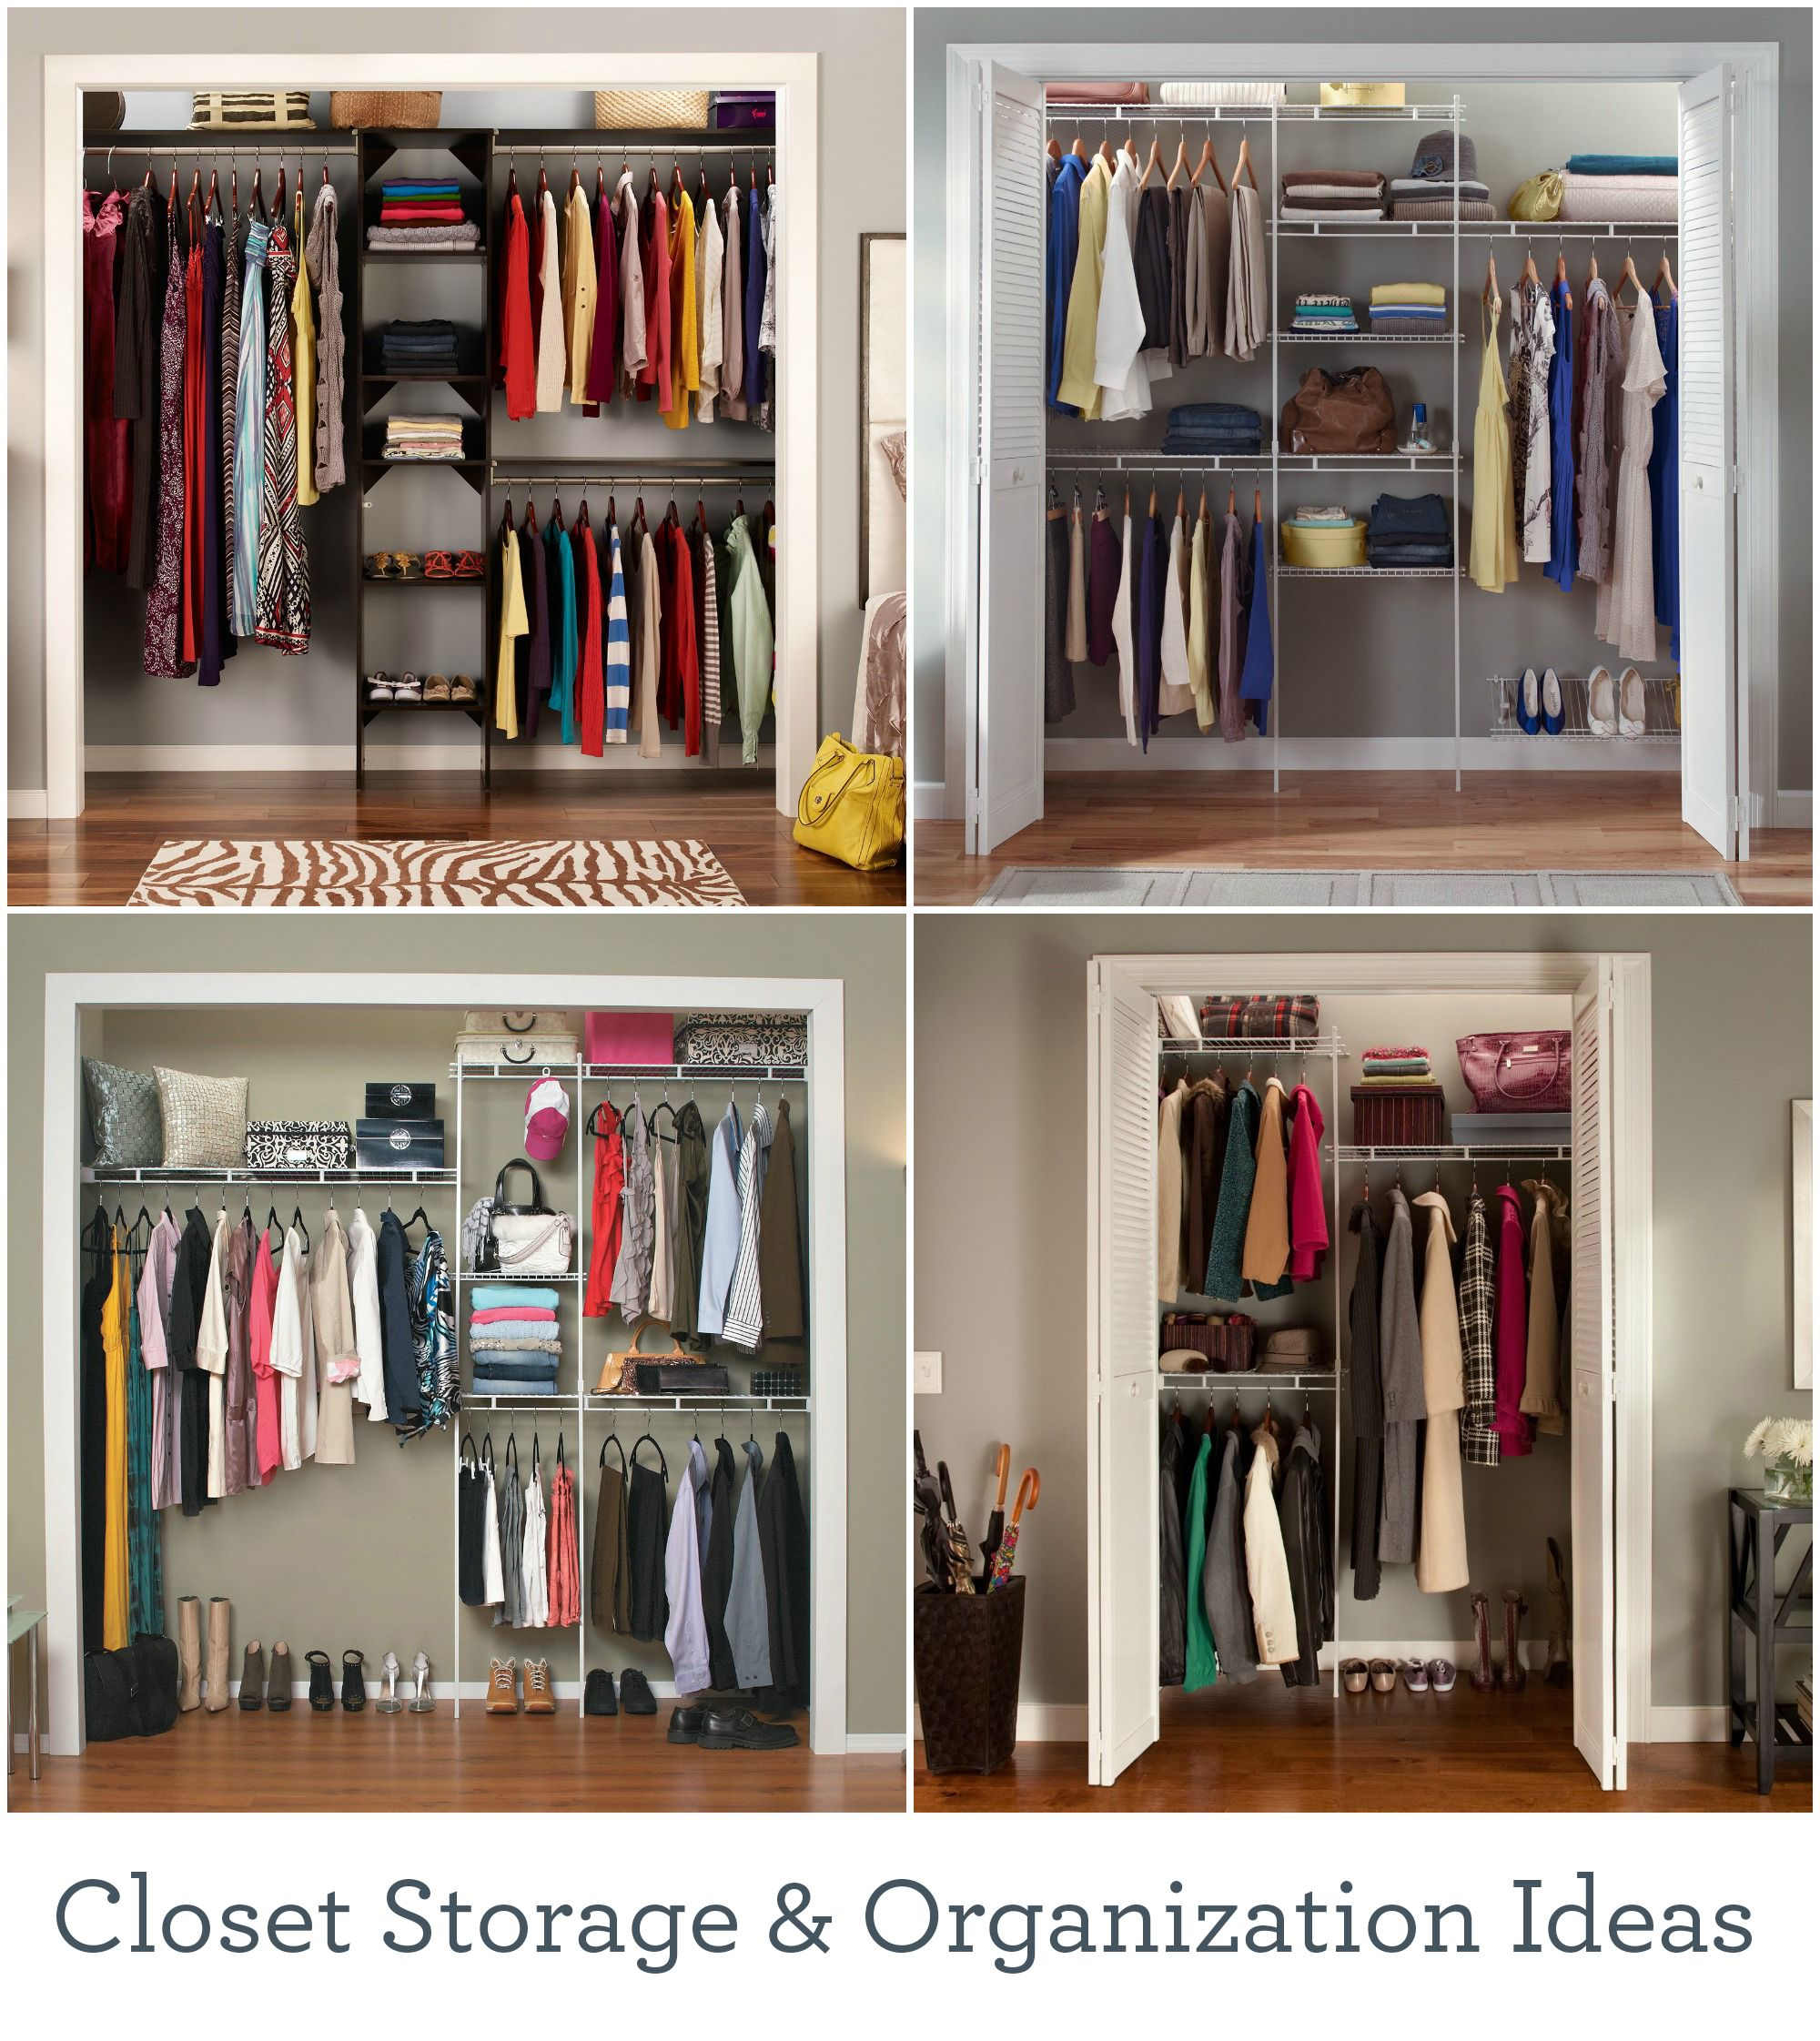 Make the most of your closet space with these storage Small room organization